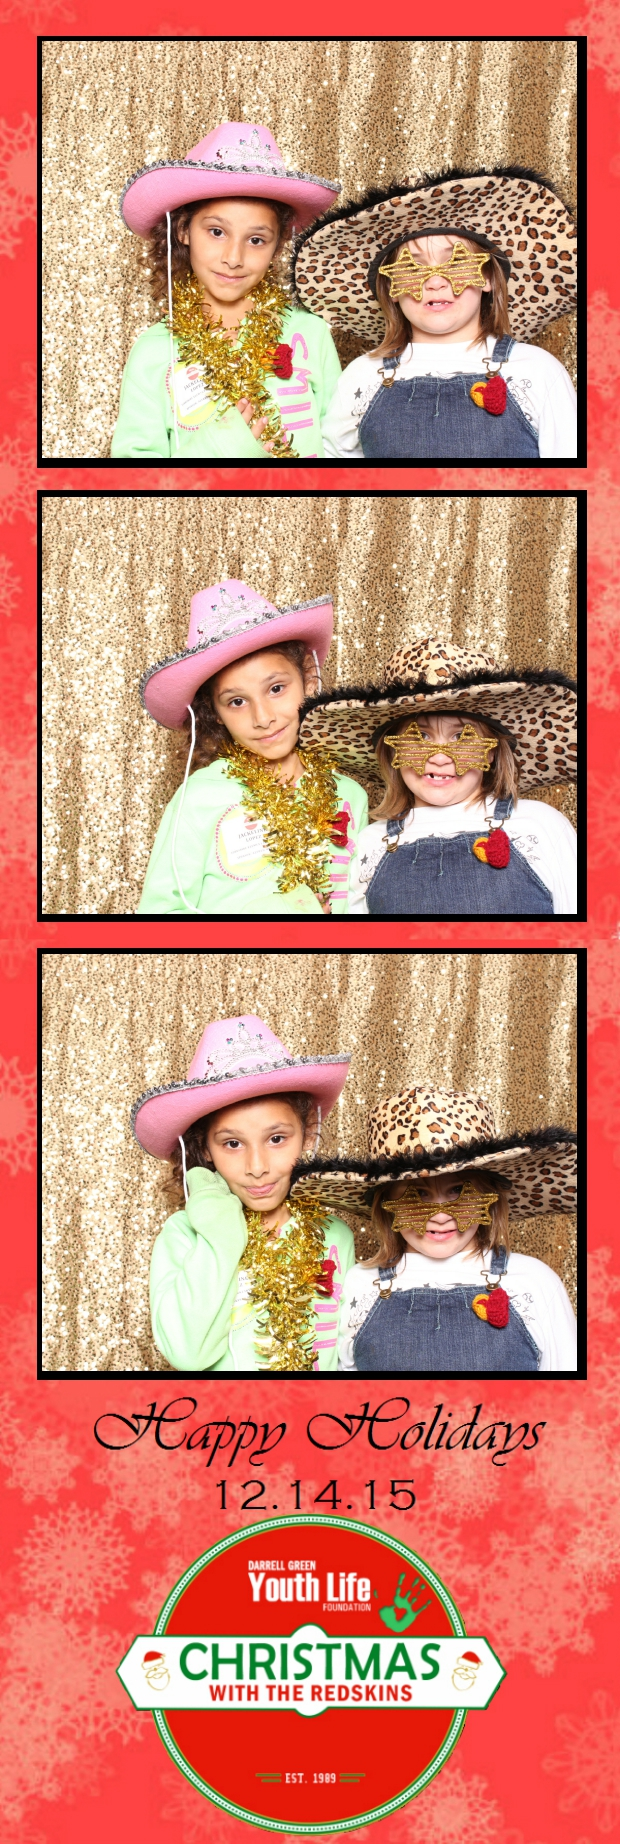 Guest House Events Photo Booth DGYLF Strips (26).jpg